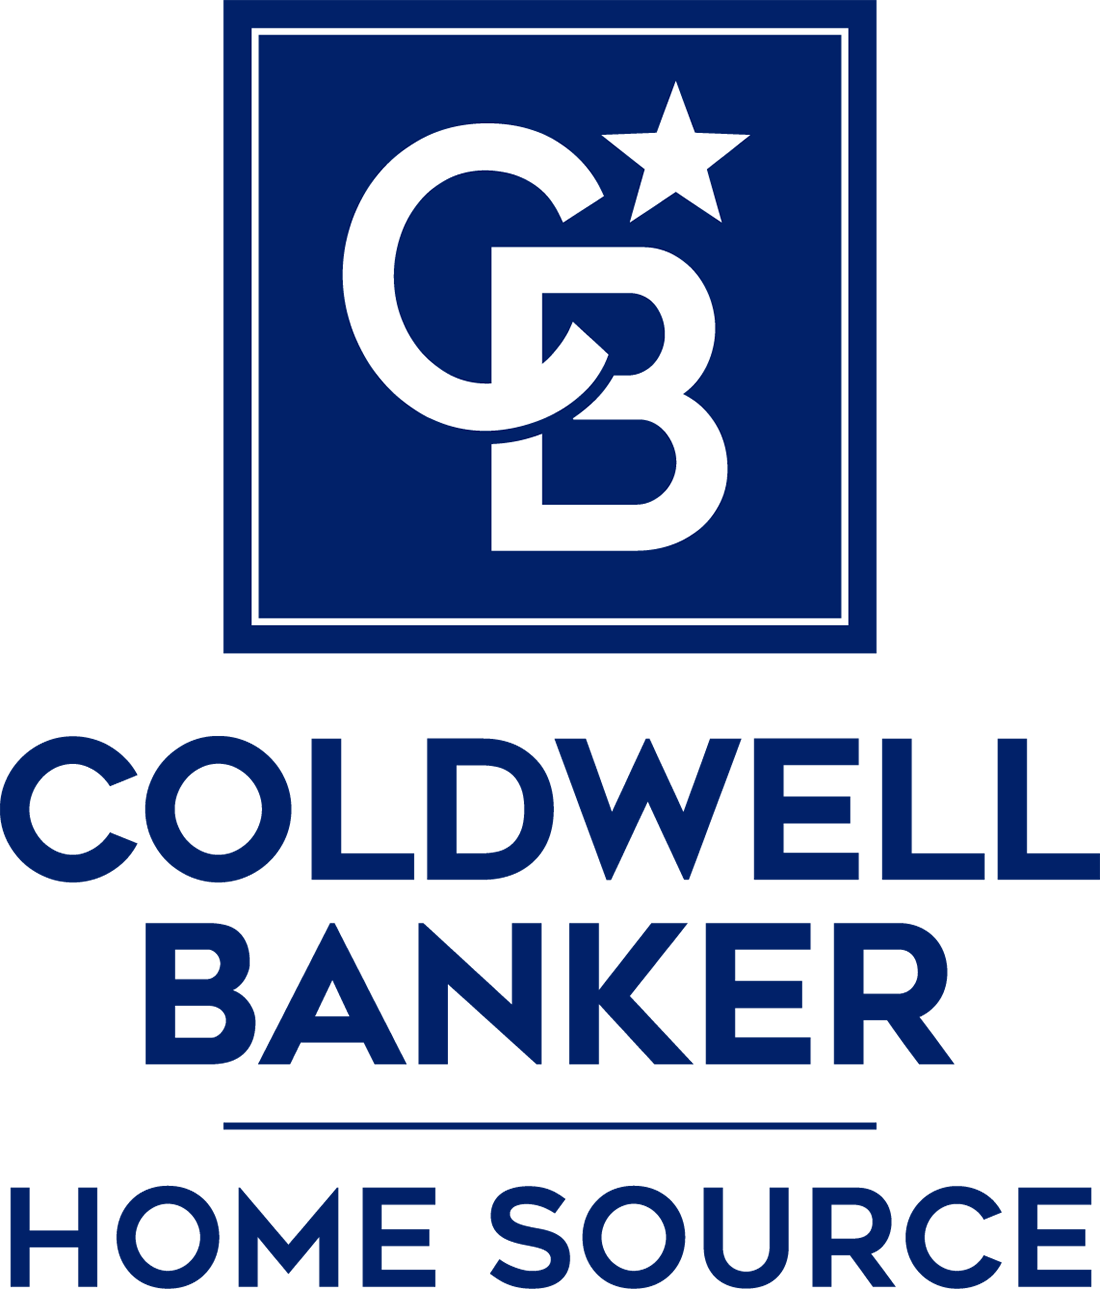 Danya Muir - Coldwell Banker Home Source Logo